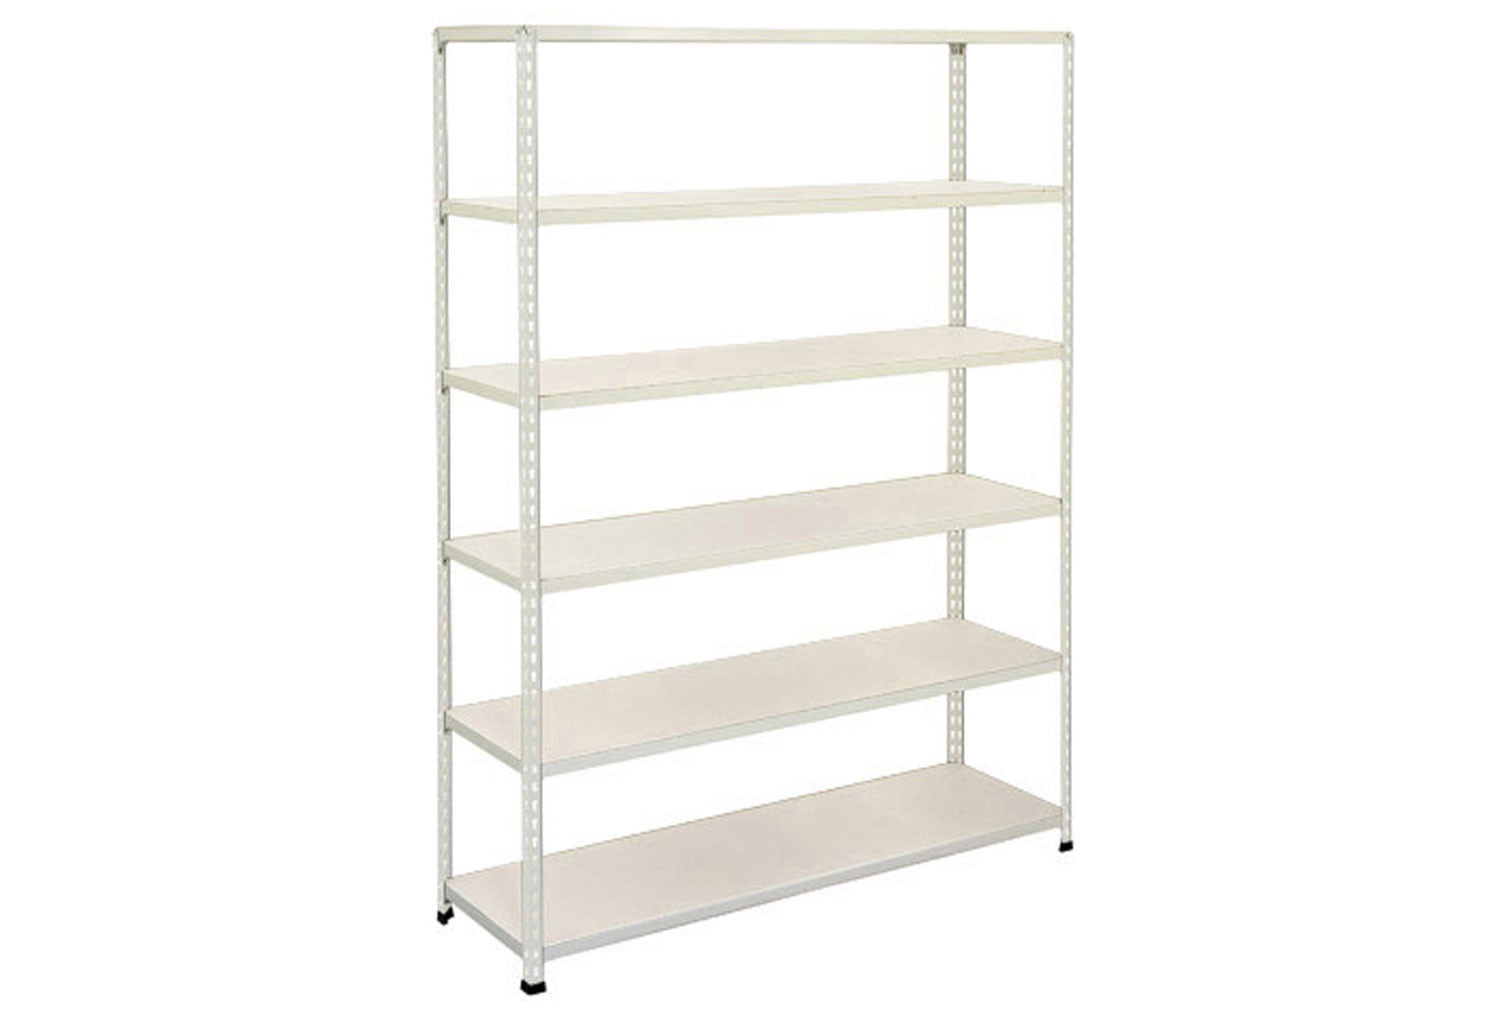 Rapid 2 Shelving With 6 Melamine Shelves 1525wx1980h (Grey)